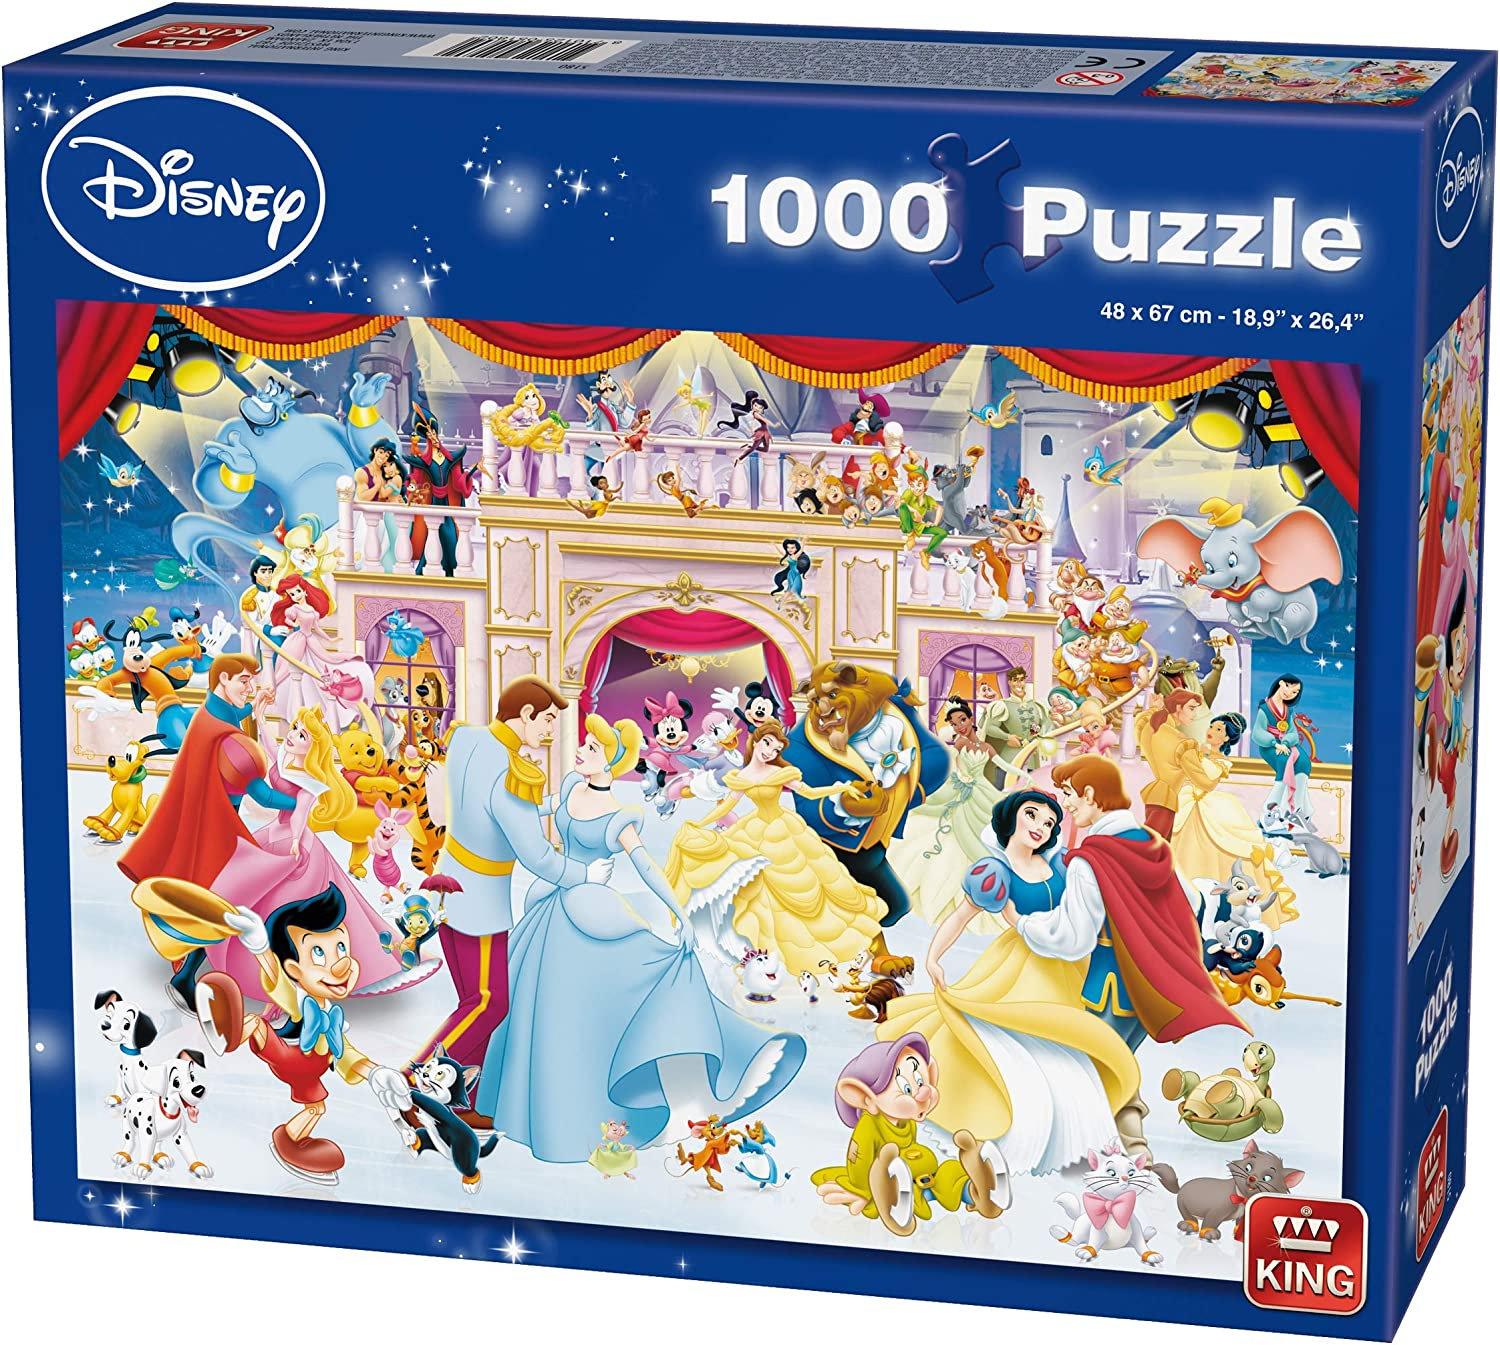 1000-Piece King KNG05180 Disney Puzzle Holiday on Ice Multicoloured